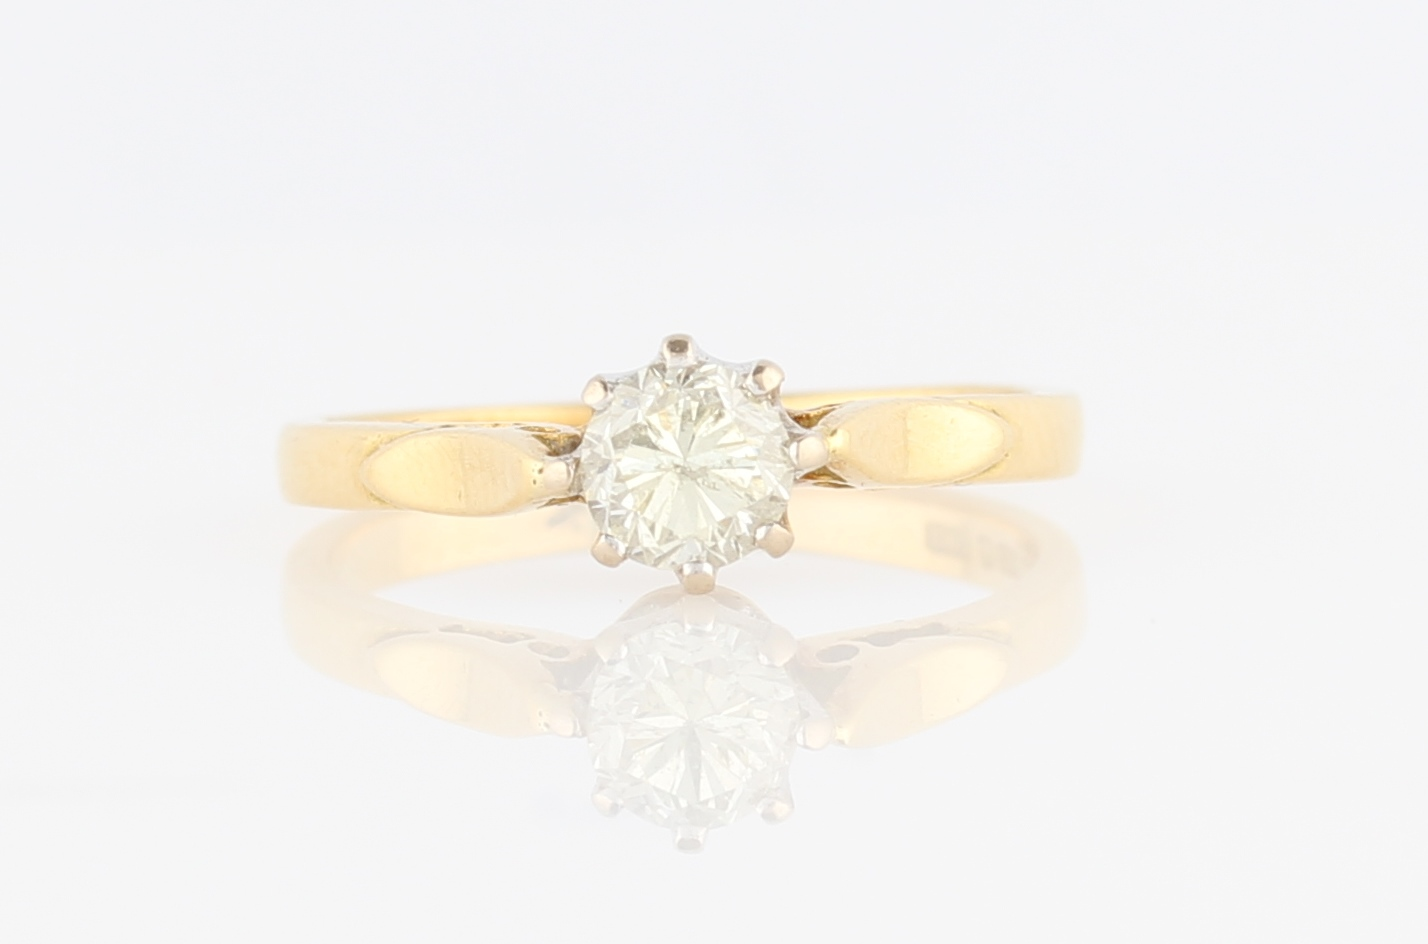 Lot 12 - An 18ct yellow gold diamond solitaire ring, set with a round brilliant cut diamond, measuring